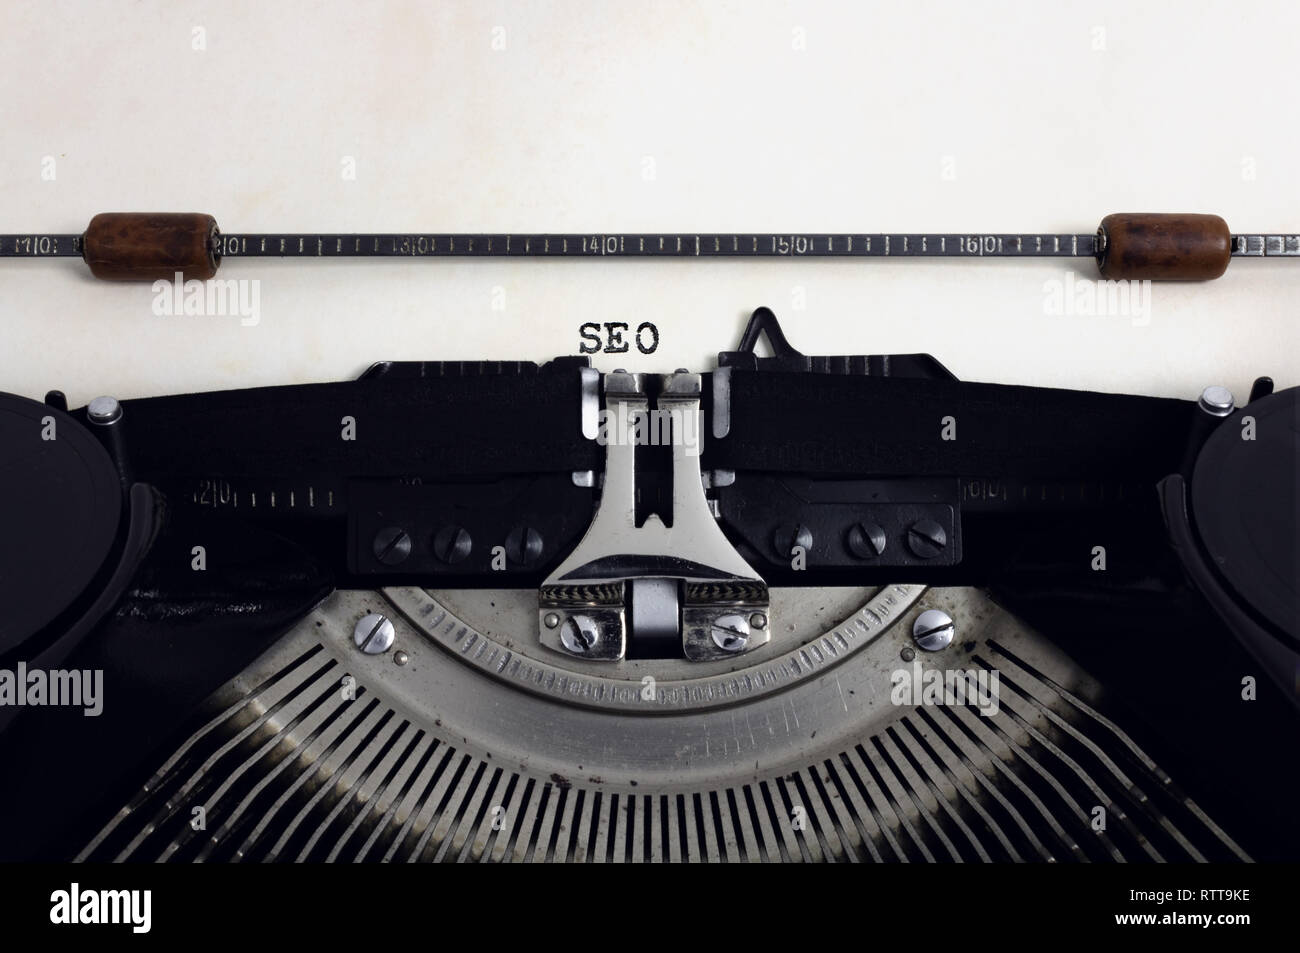 Old retro vintage black typewriter with close-up typing text SEO as heading on aged paper Stock Photo